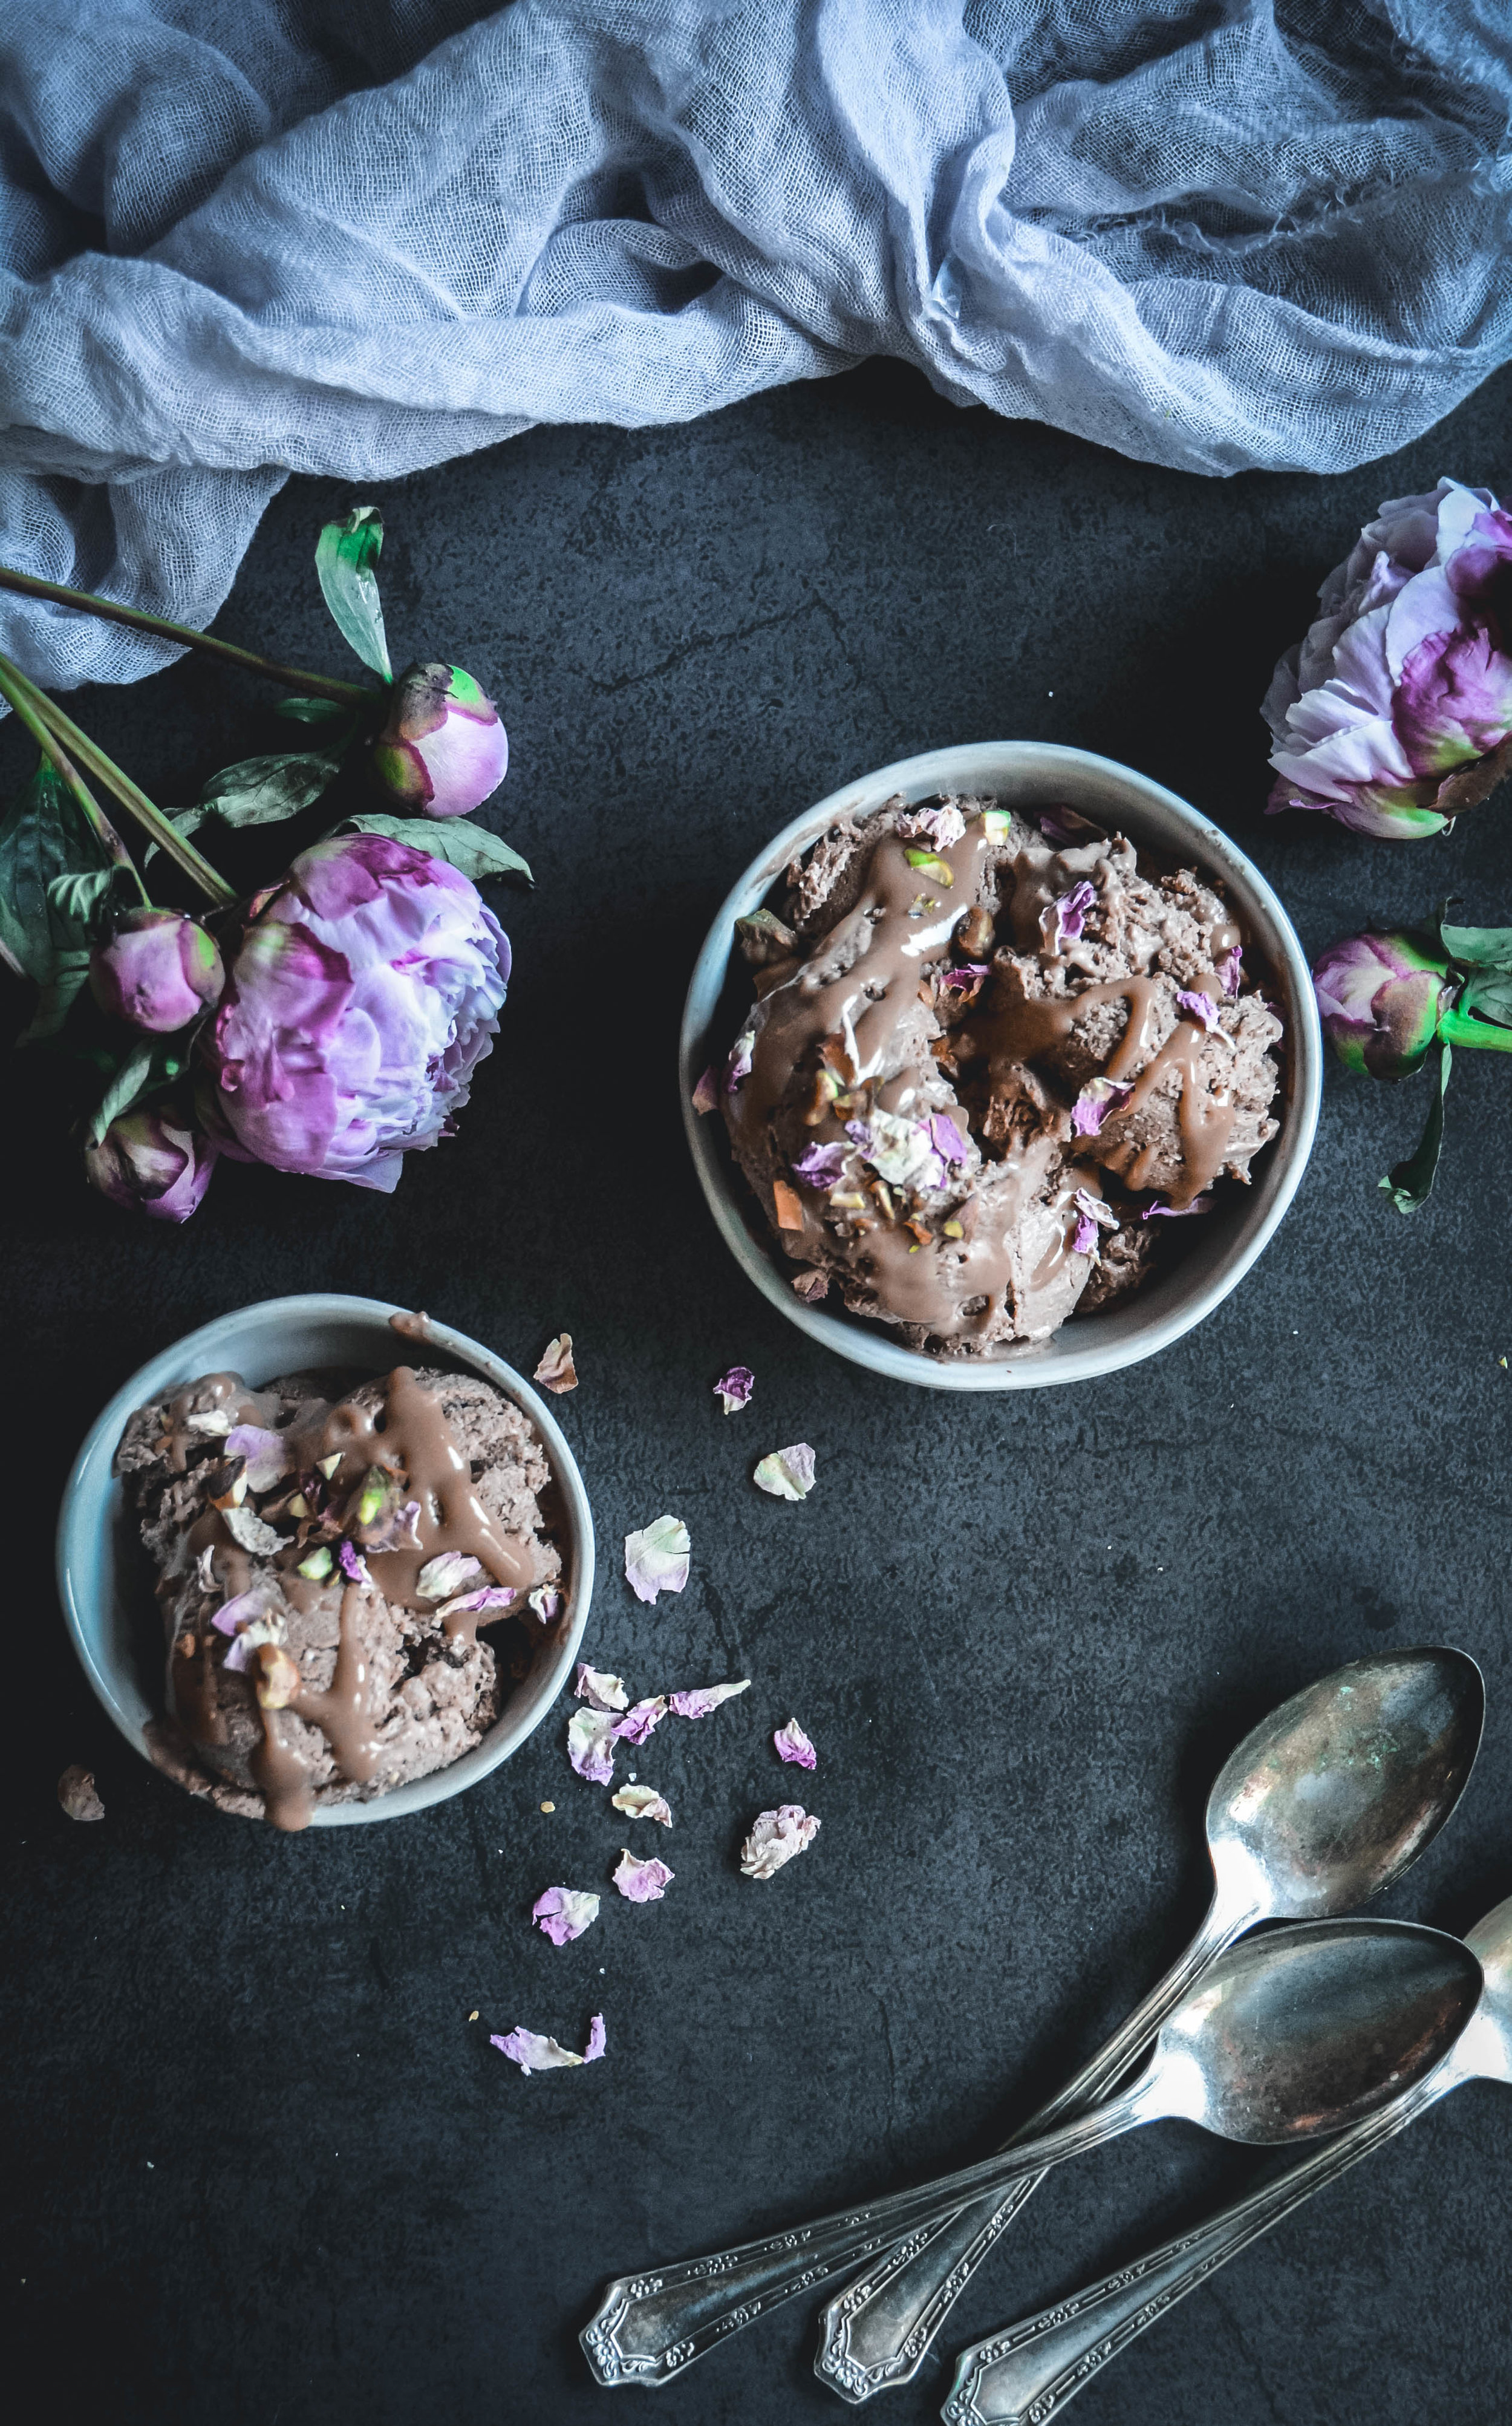 chocolate ice cream in bowl with napkin, spoons and peony's